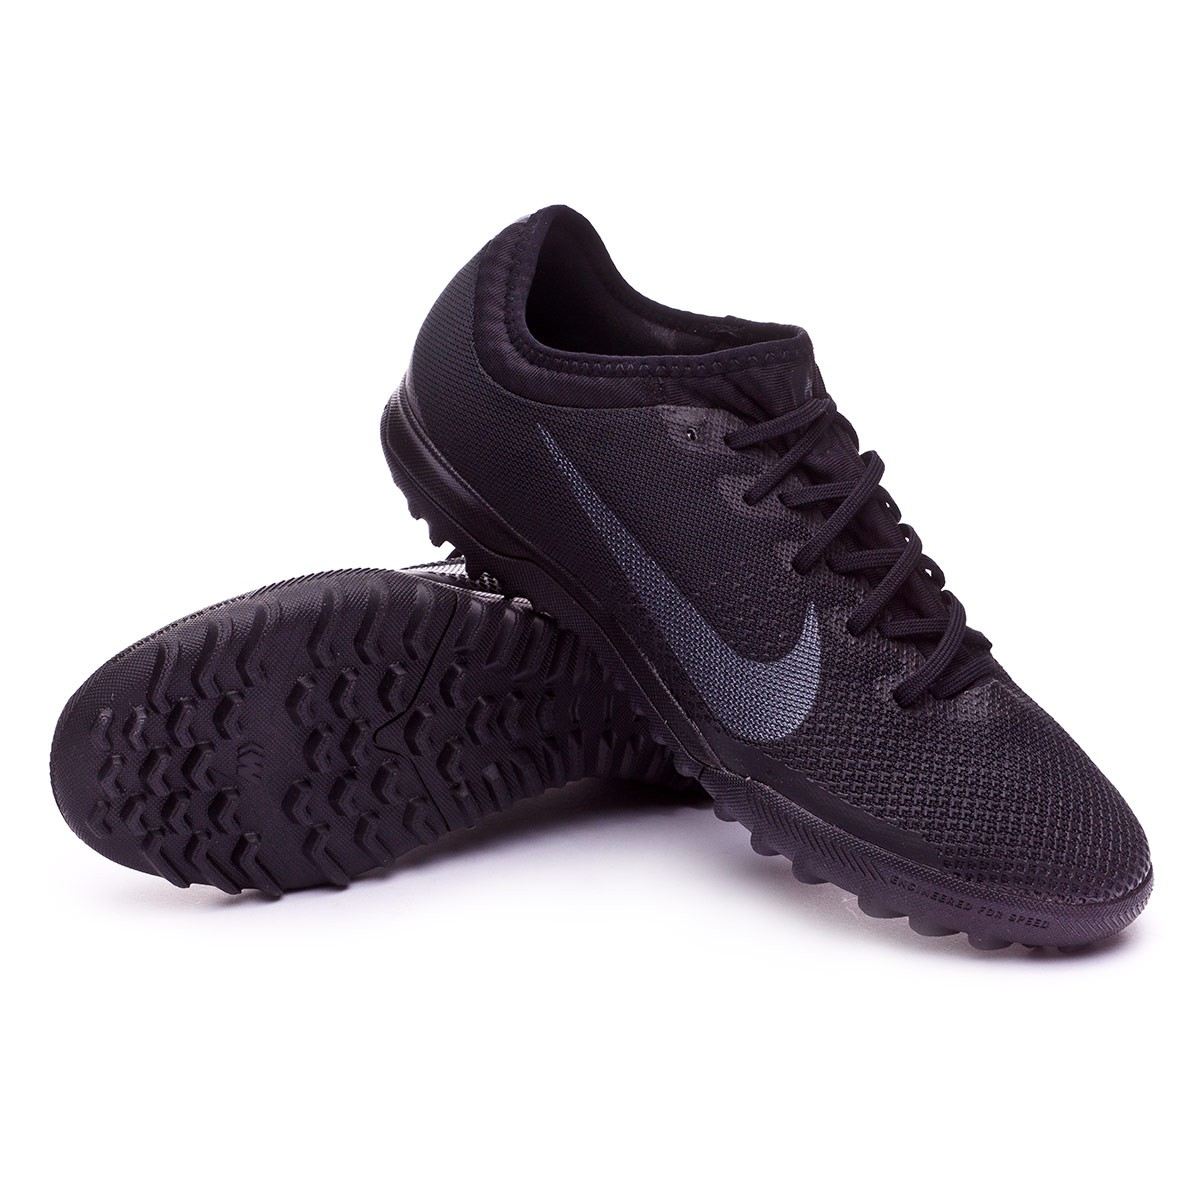 75d8f643897f3 Football Boot Nike Mercurial Vapor XII Pro Turf Black - Tienda de ...